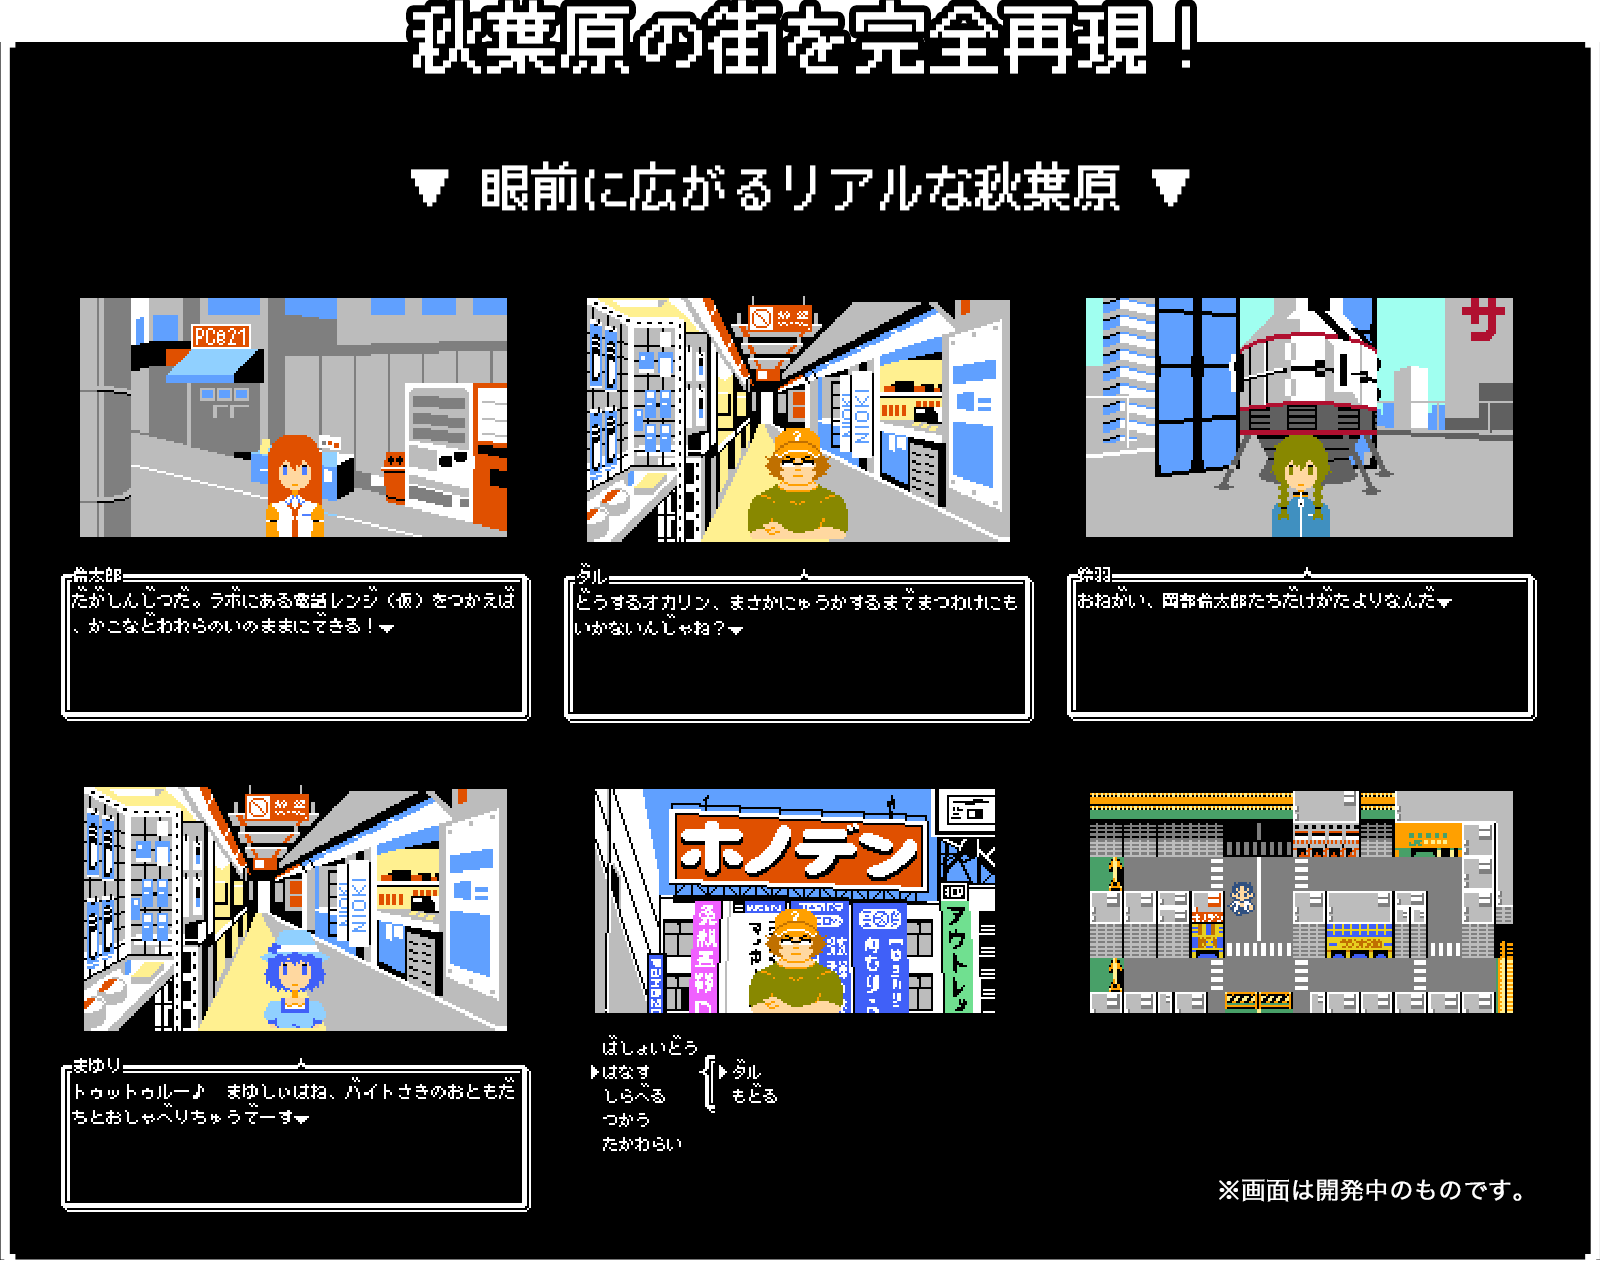 http://steinsgate.jp/elite/famicolle/images/section_01.png